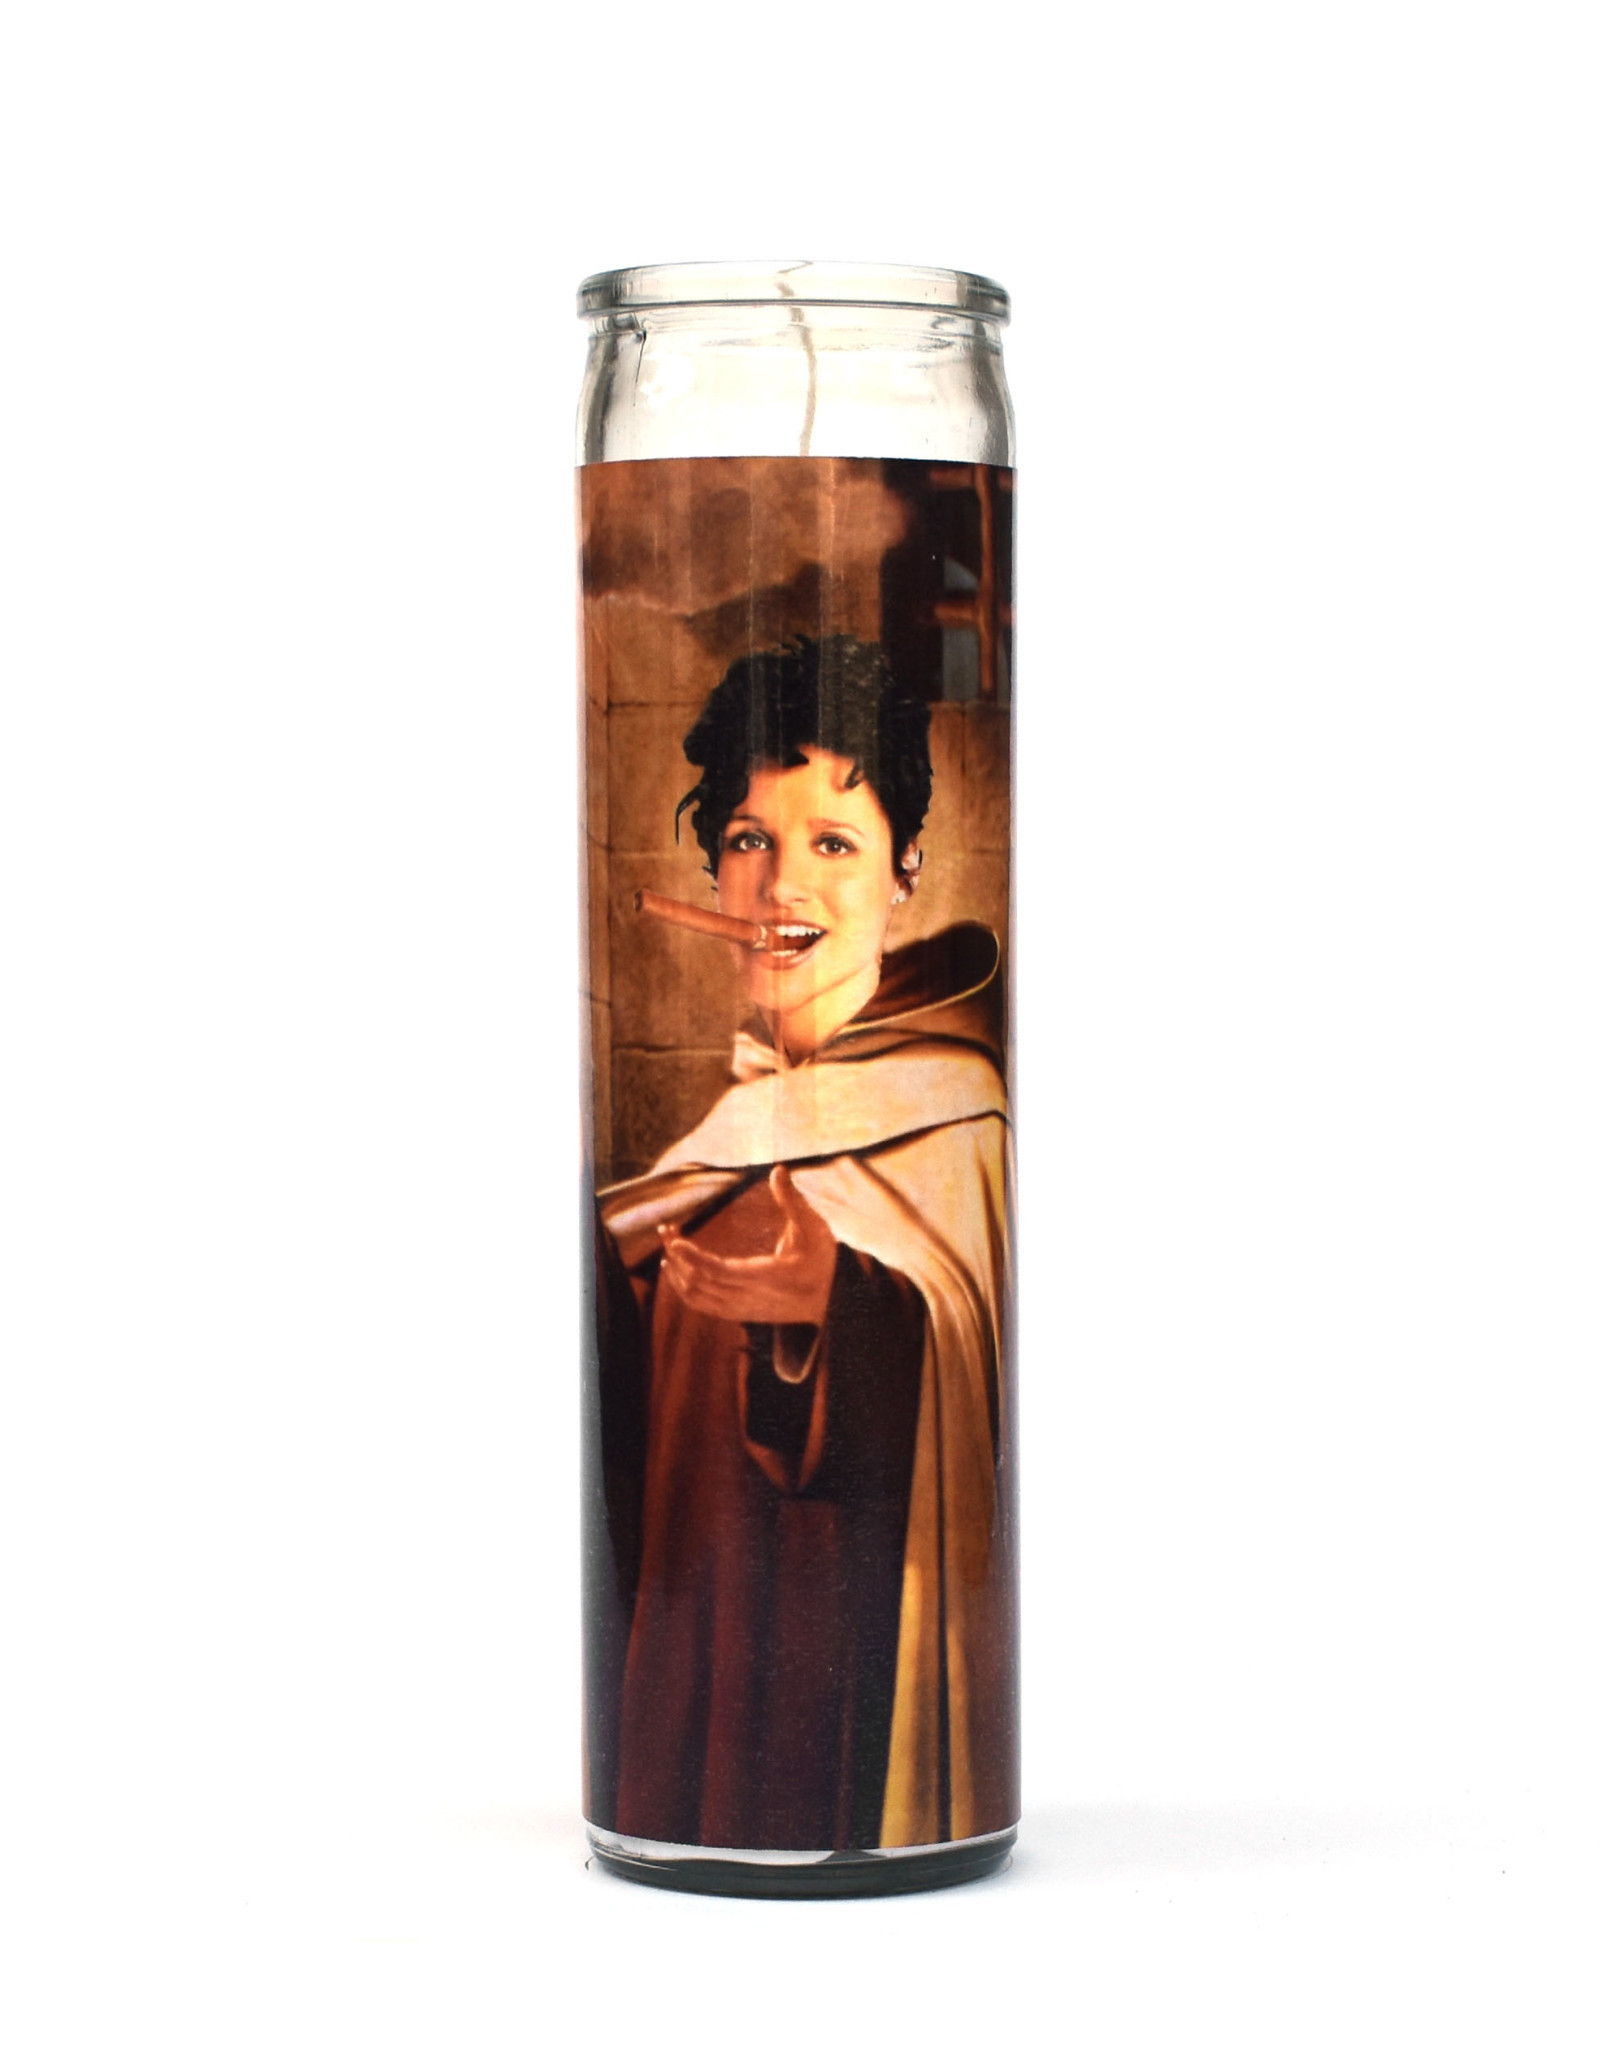 St. Elaine Benes (Seinfeld) Prayer Candle